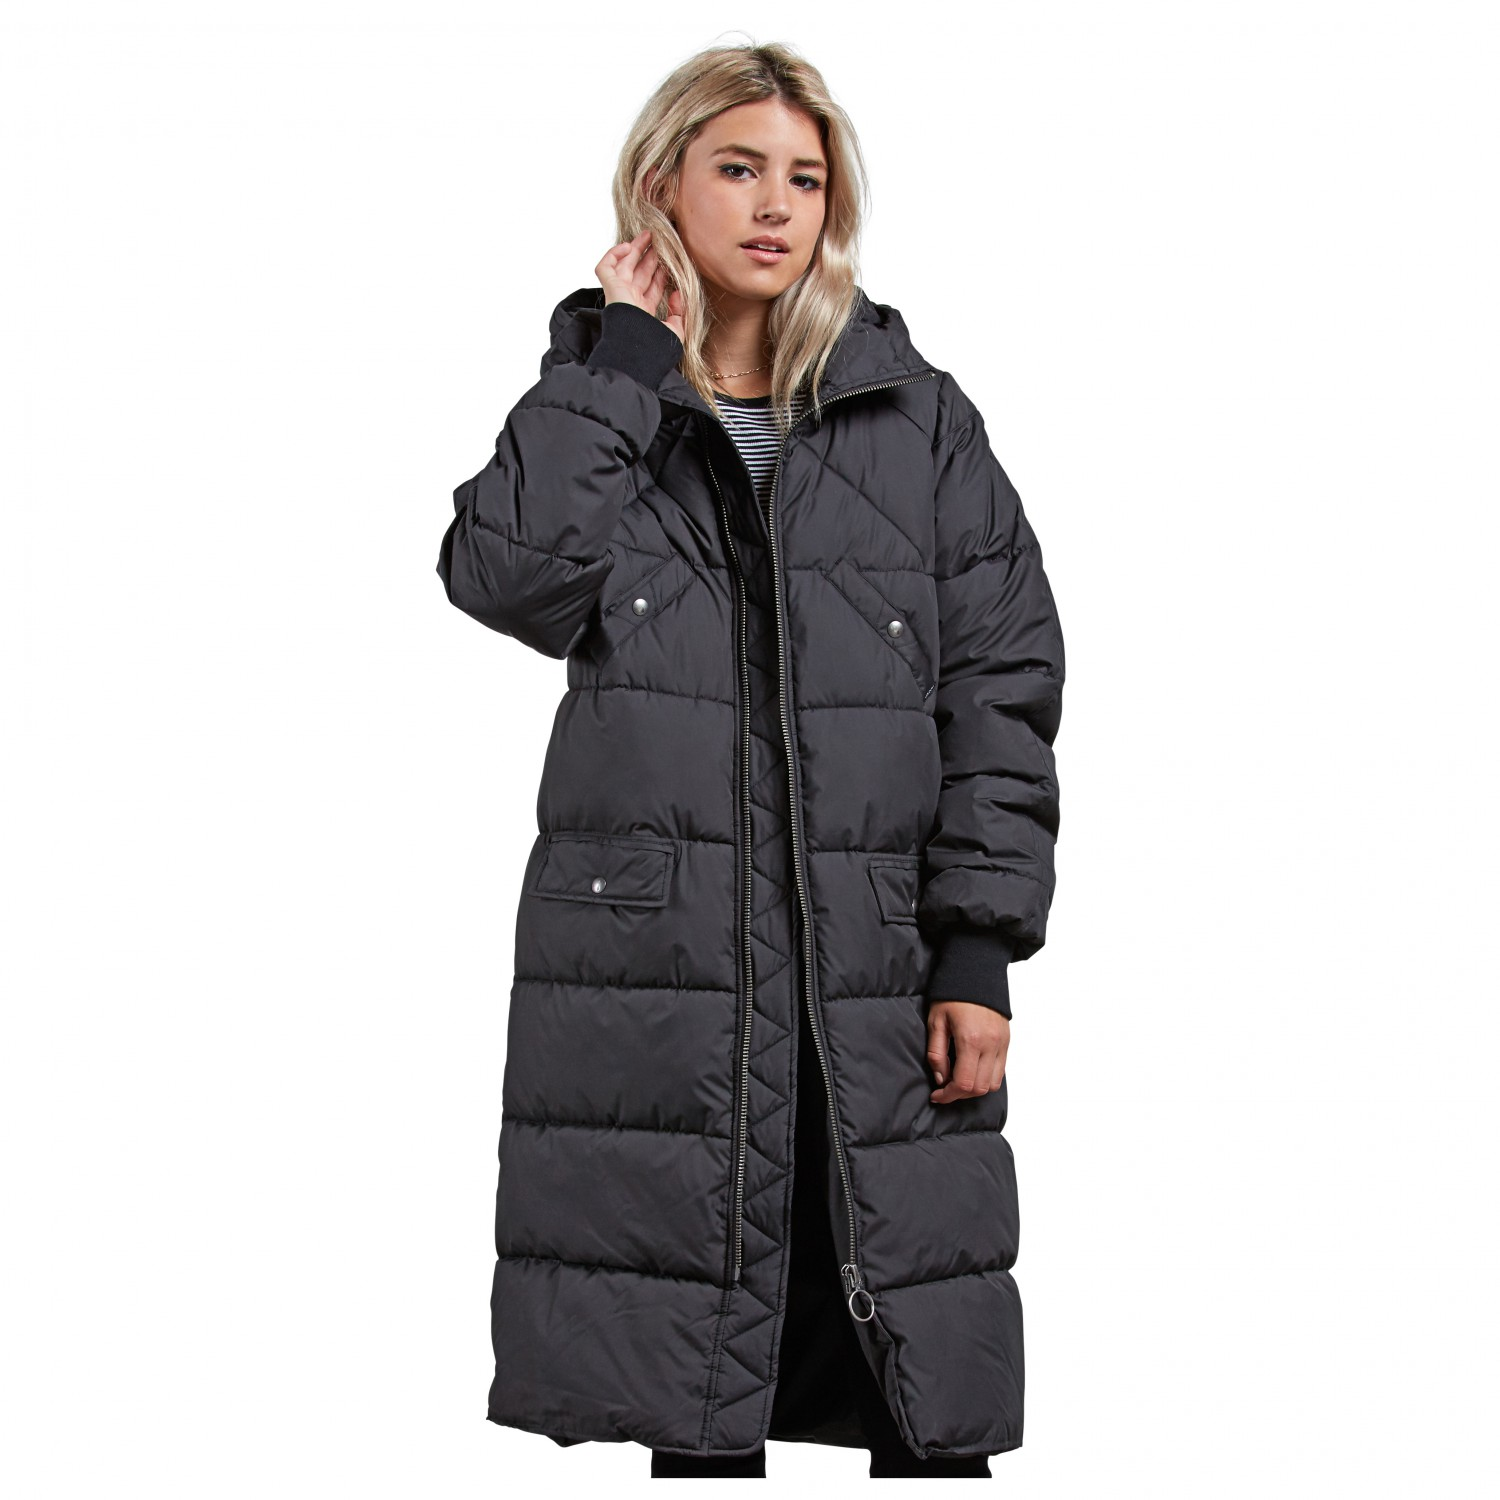 Volcom Women's Puffa Chillax Volcom In Women's ffrBUq